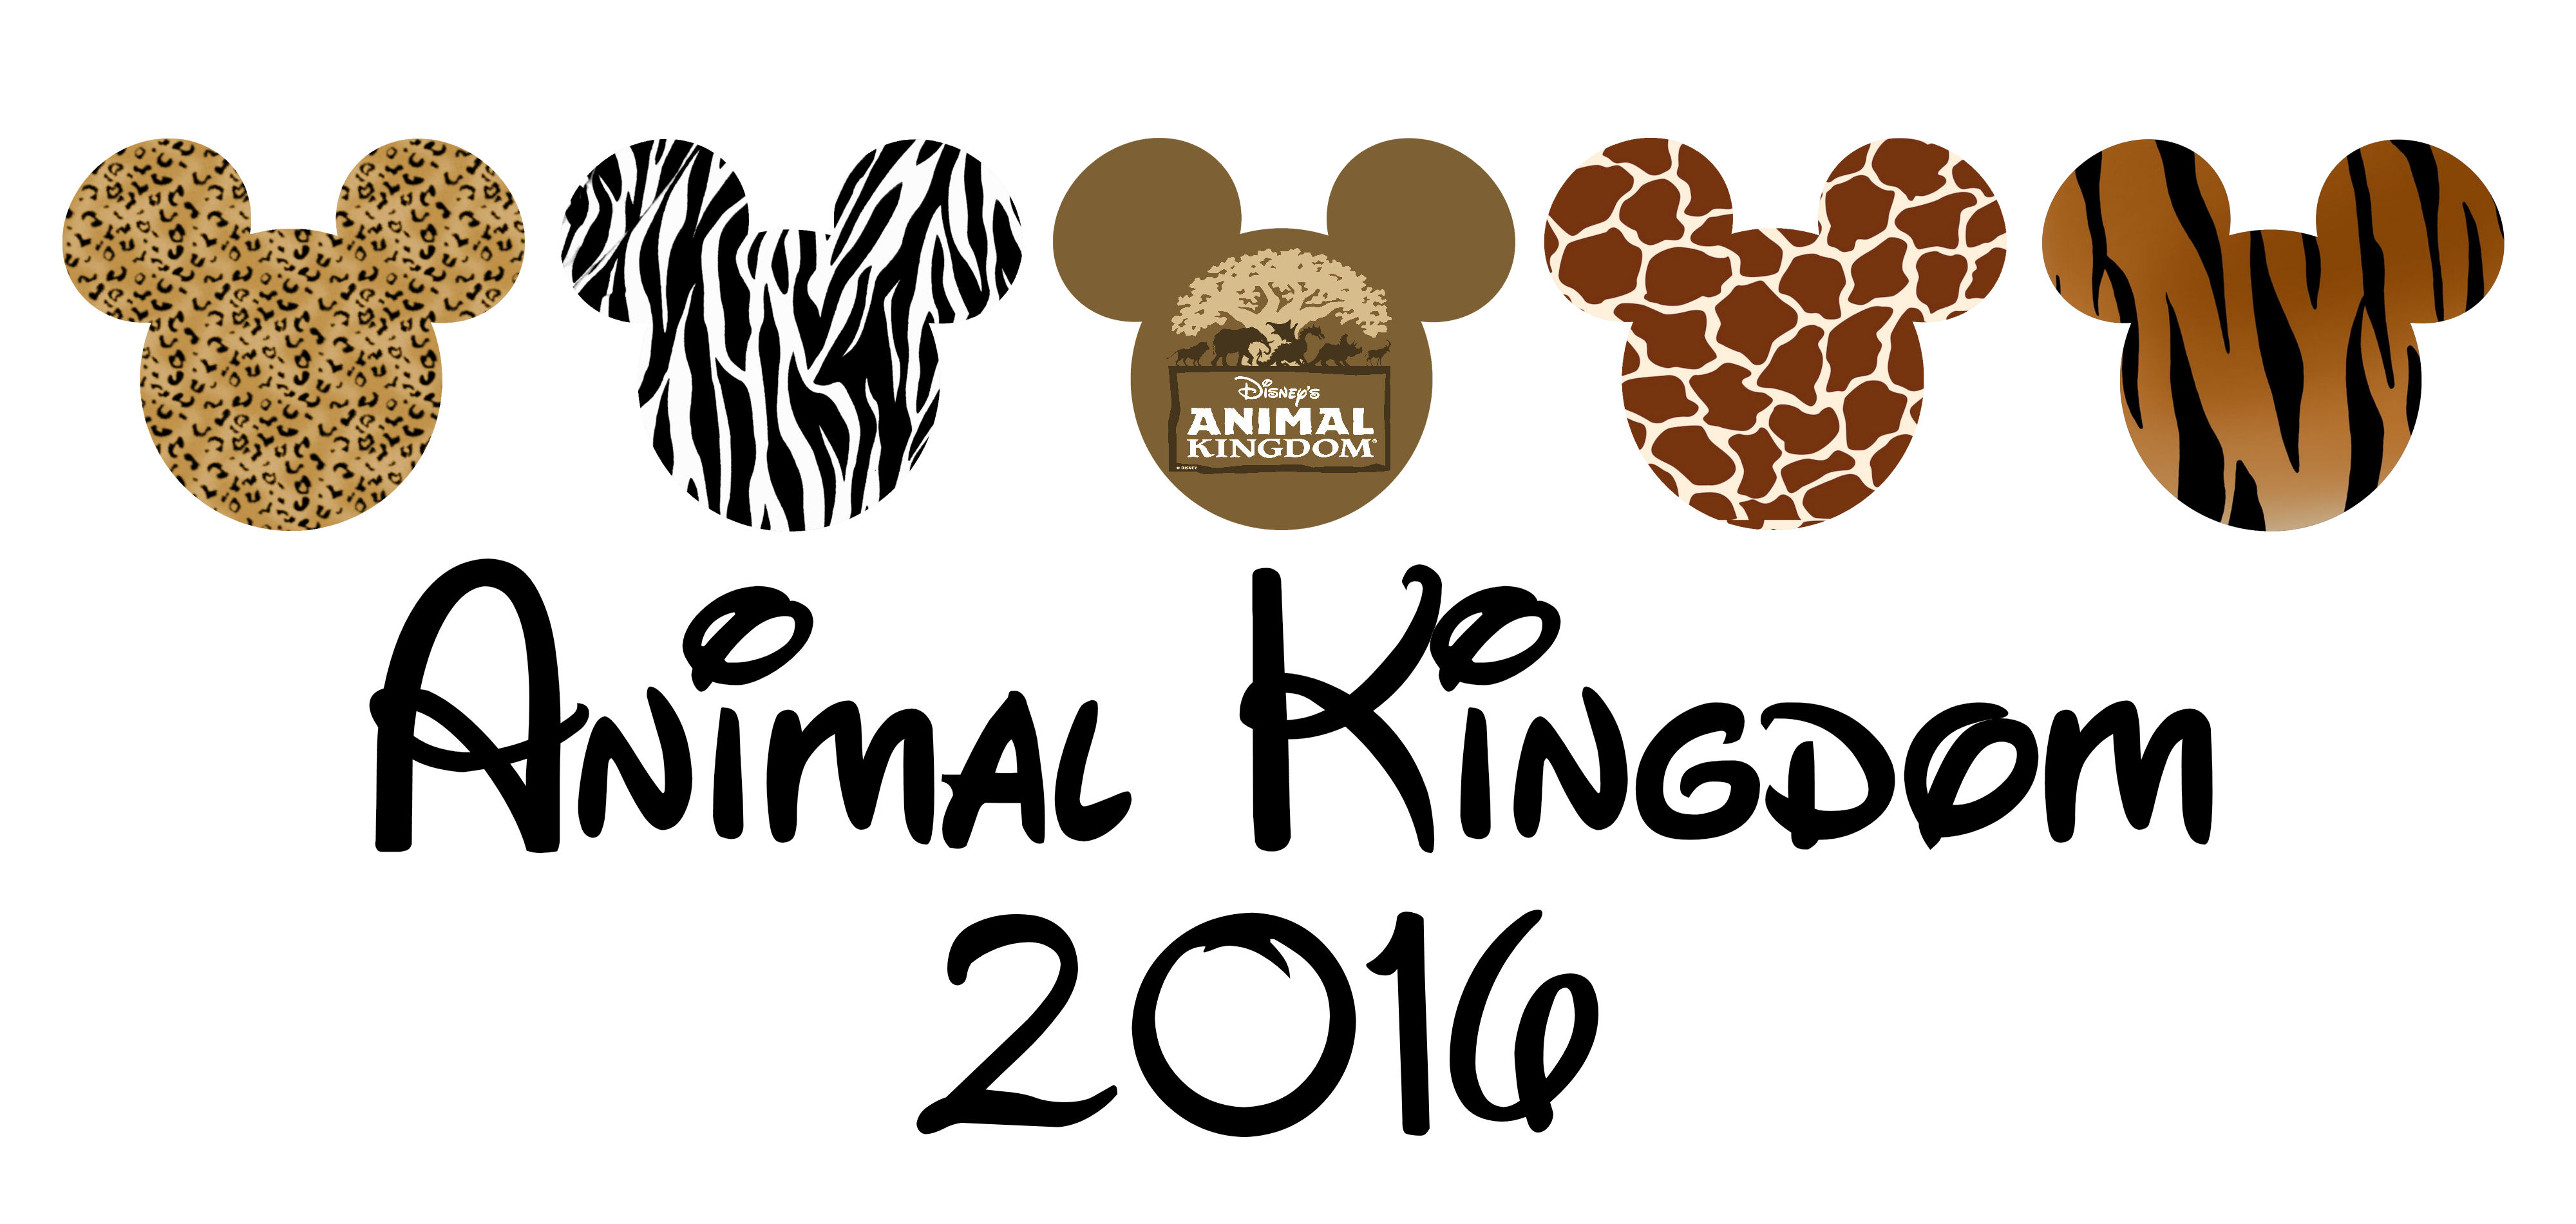 Animal kingdom clipart png royalty free library Animal kingdom clipart - ClipartFest png royalty free library